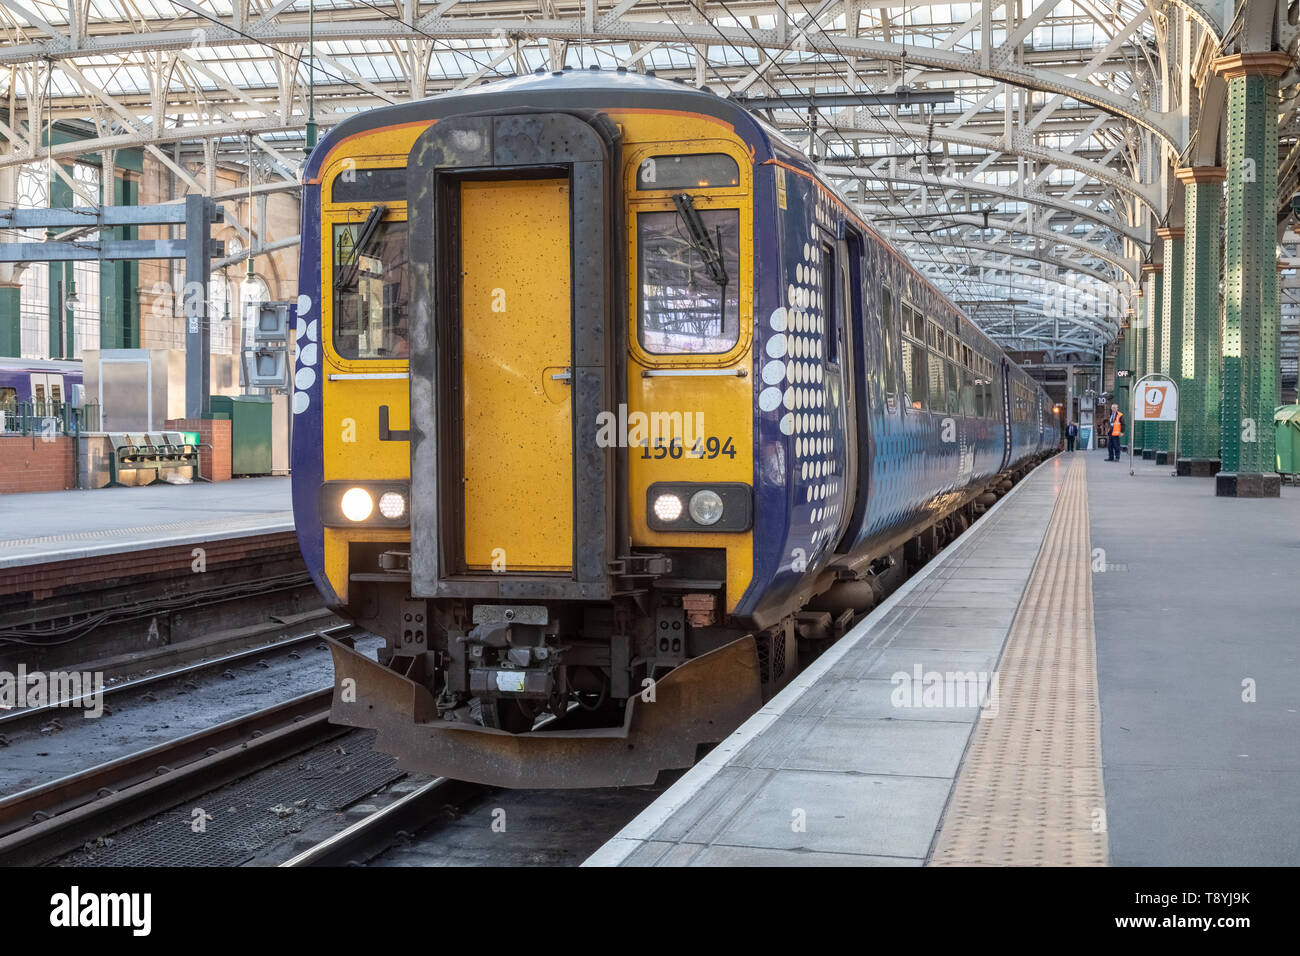 A Scotrail Class 156 diesel multiple unit train sits at platform 10 of Glasgow Central Station. - Stock Image